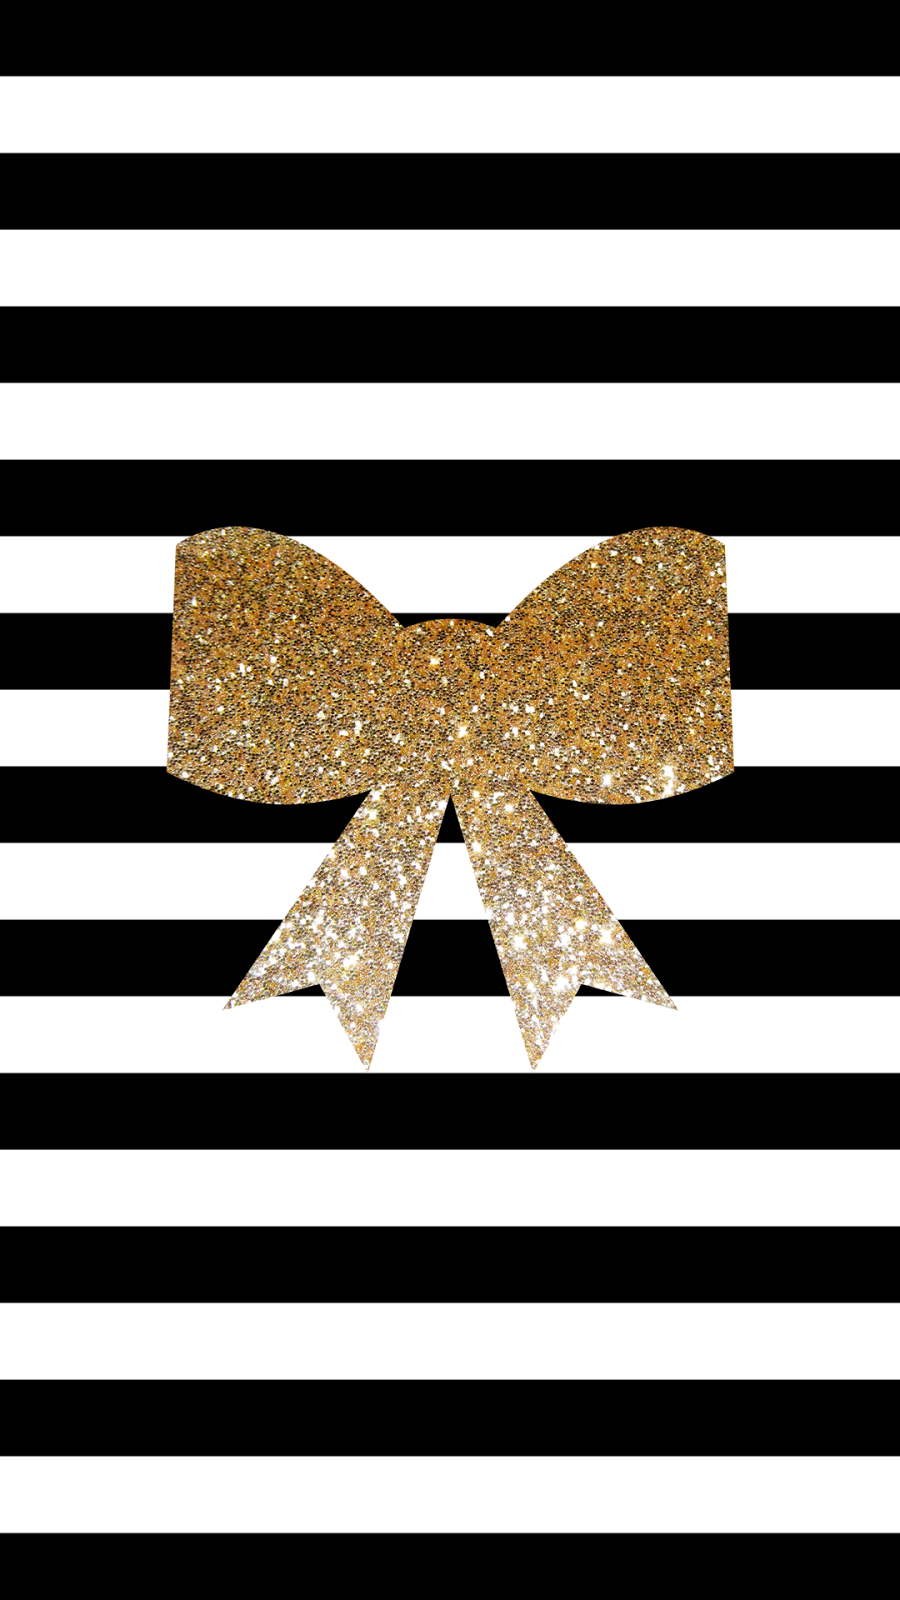 Black-and-white-stripes-a-gold-bow-wallpaper-wp5005284